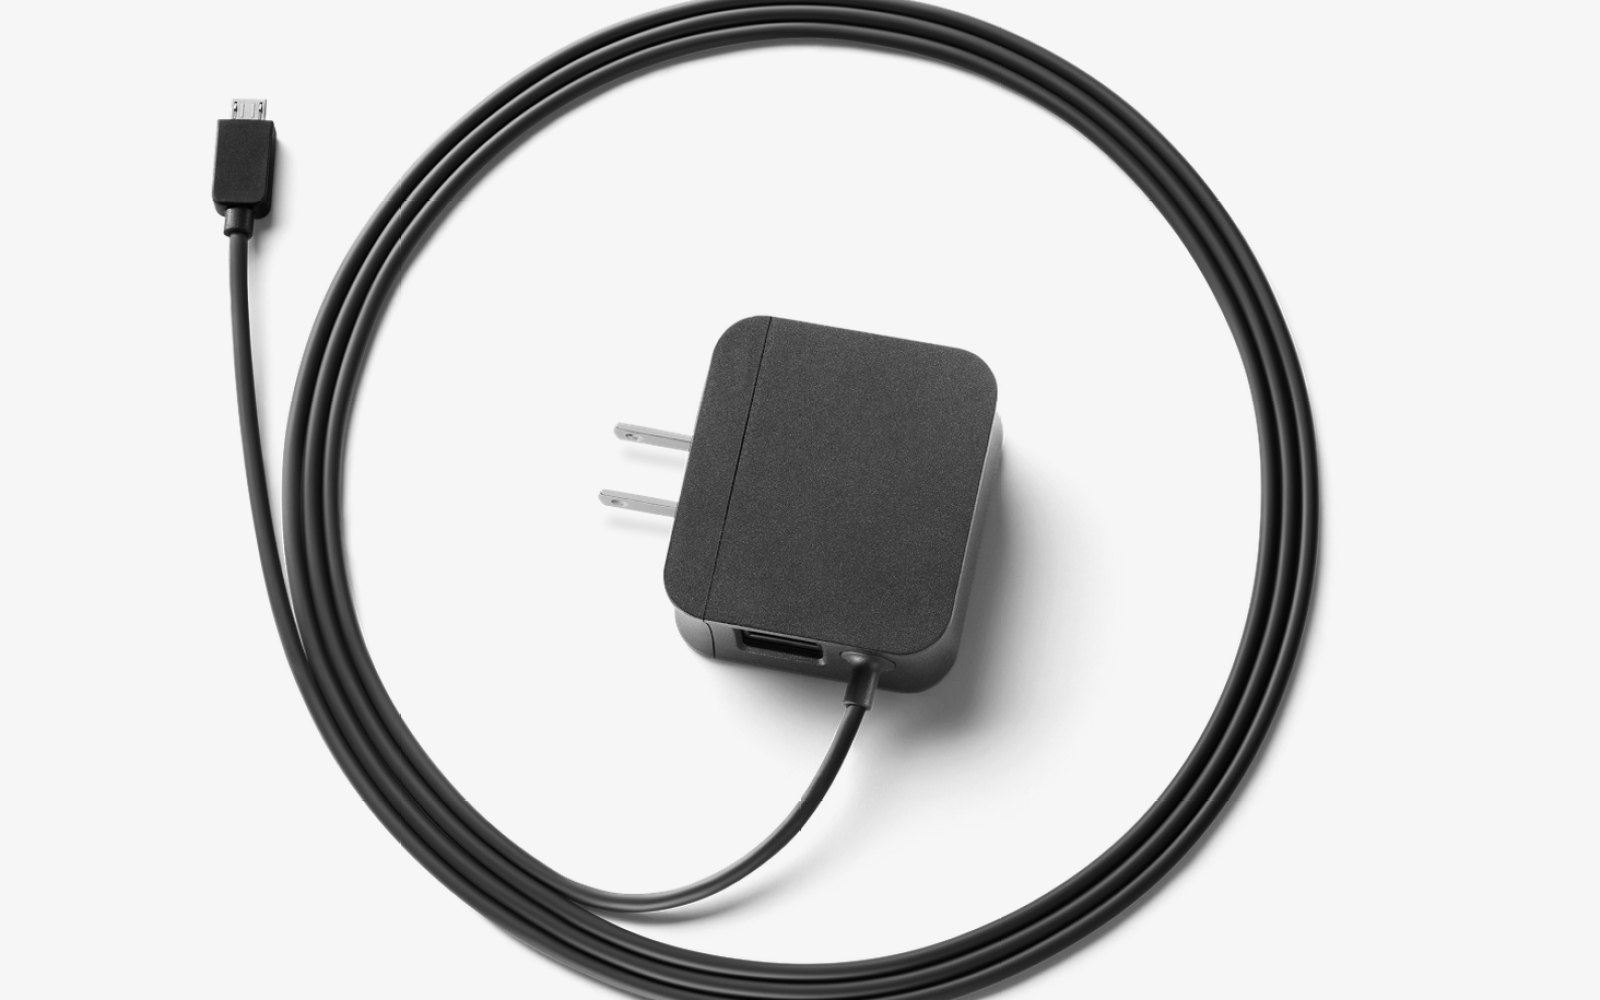 Google has a new ethernet adapter for the Chromecast, costs $15 ...